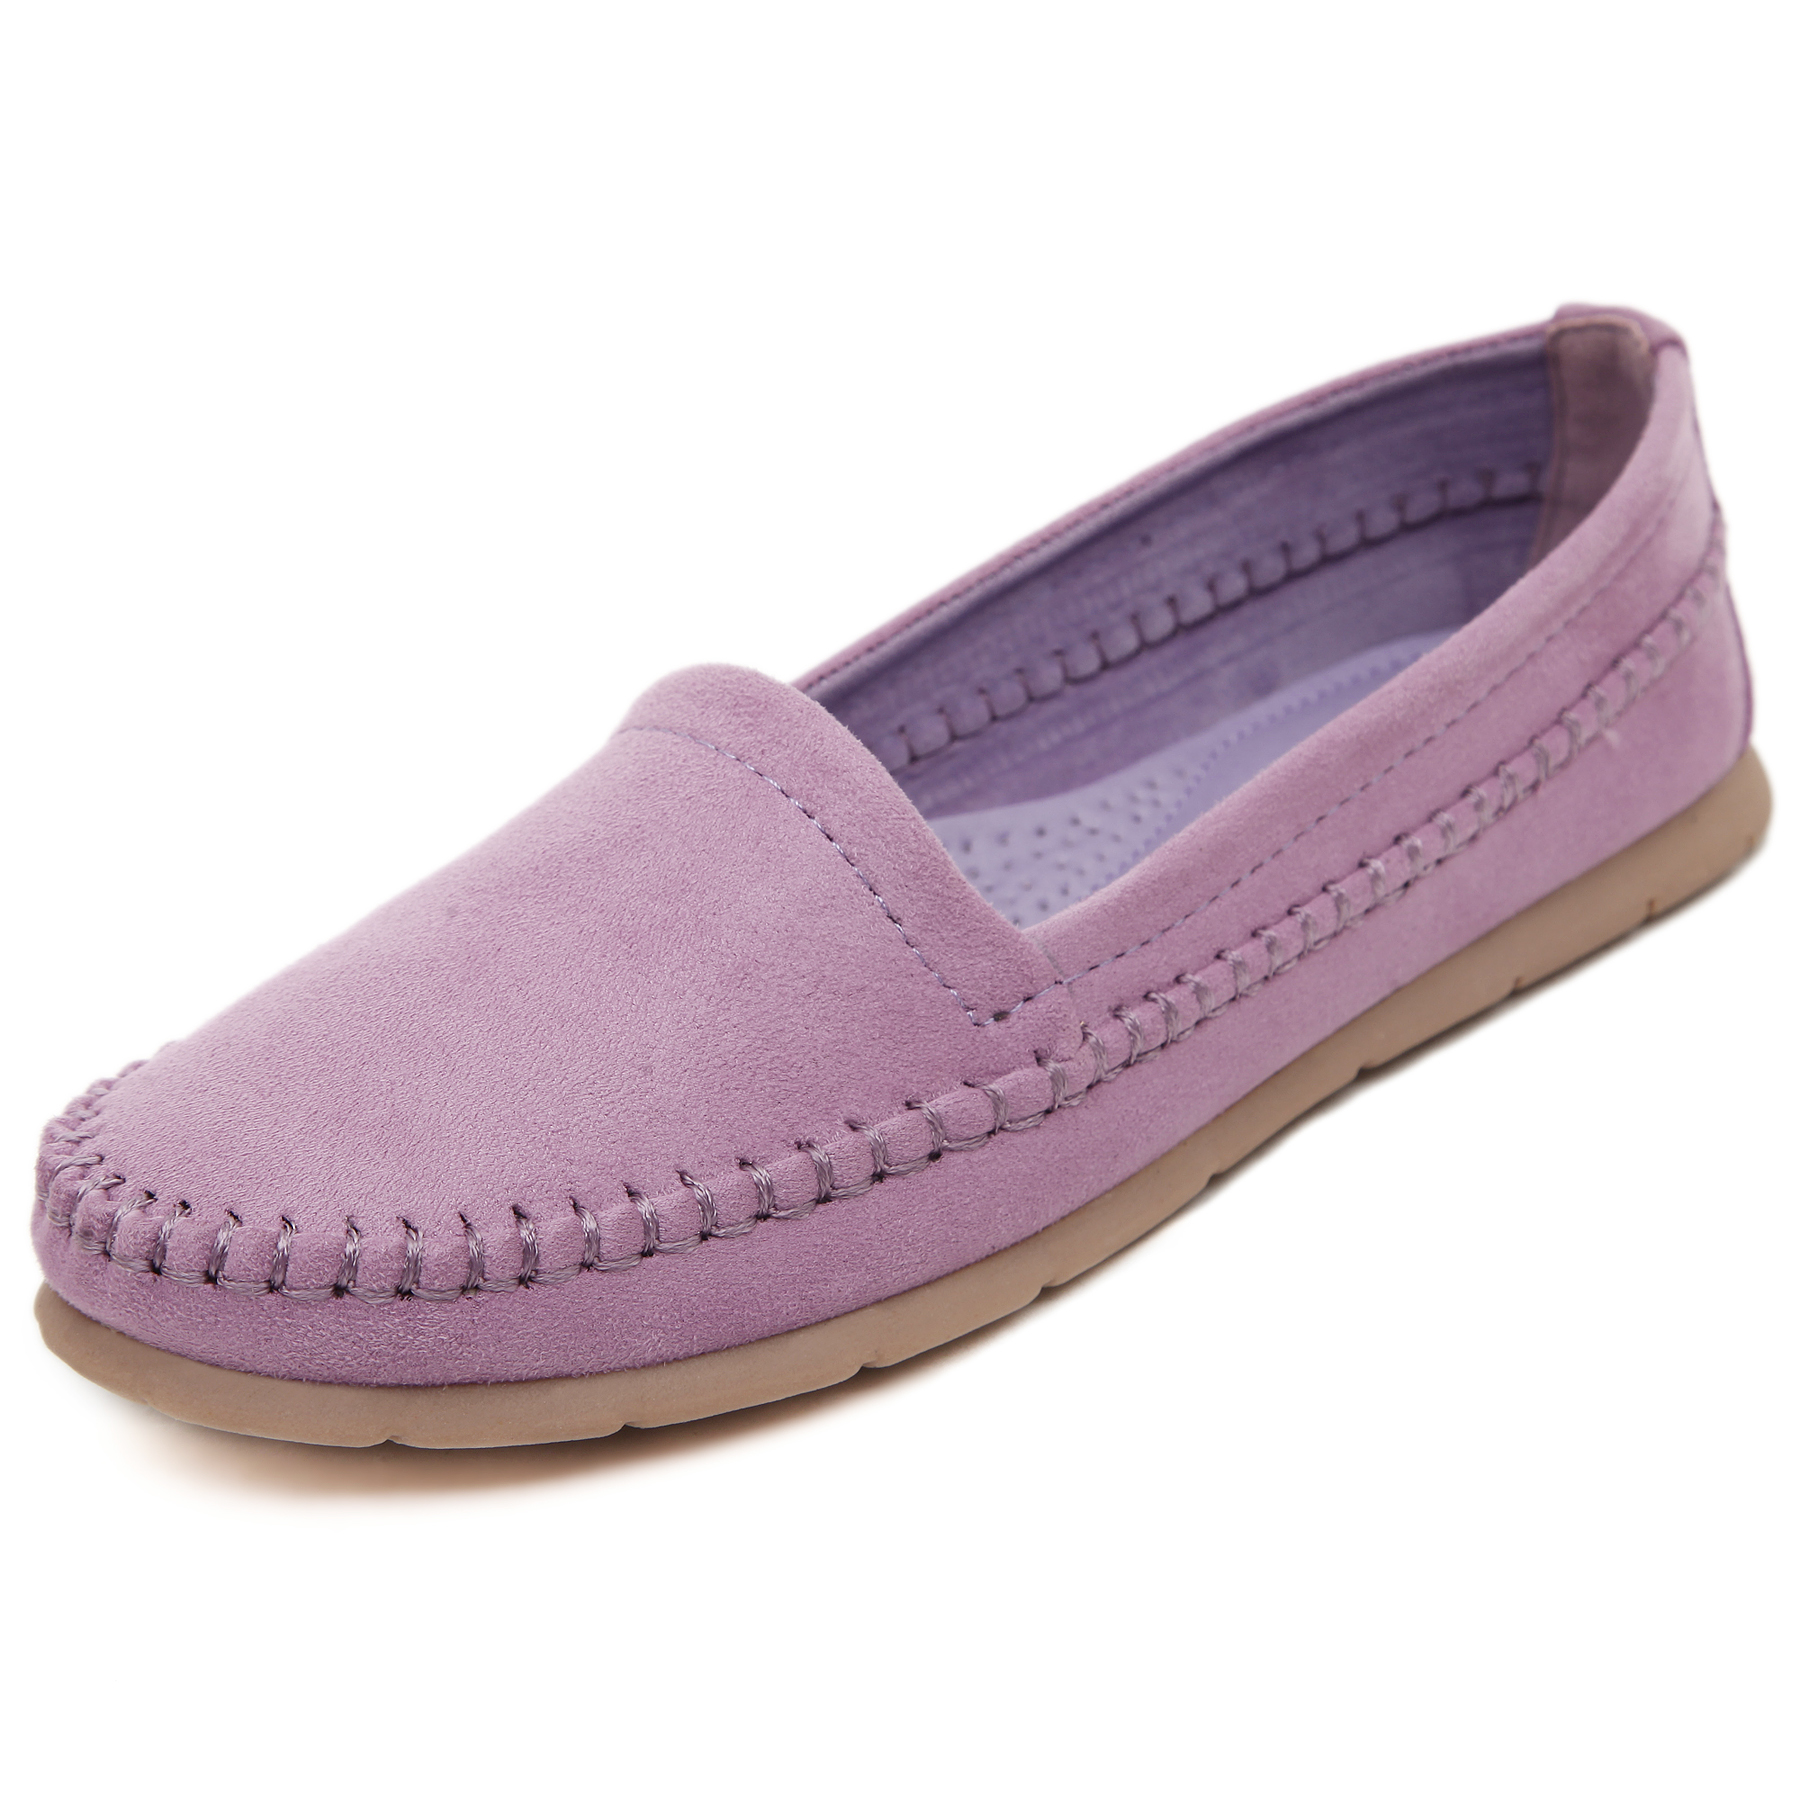 Brand New Fashion Casual Brief Loafers Sweet Candy Colors Women Flats Solid Summer Style Shoes Woman 4 Colors Plus Size 35-40 new 2017 spring summer women shoes pointed toe high quality brand fashion womens flats ladies plus size 41 sweet flock t179